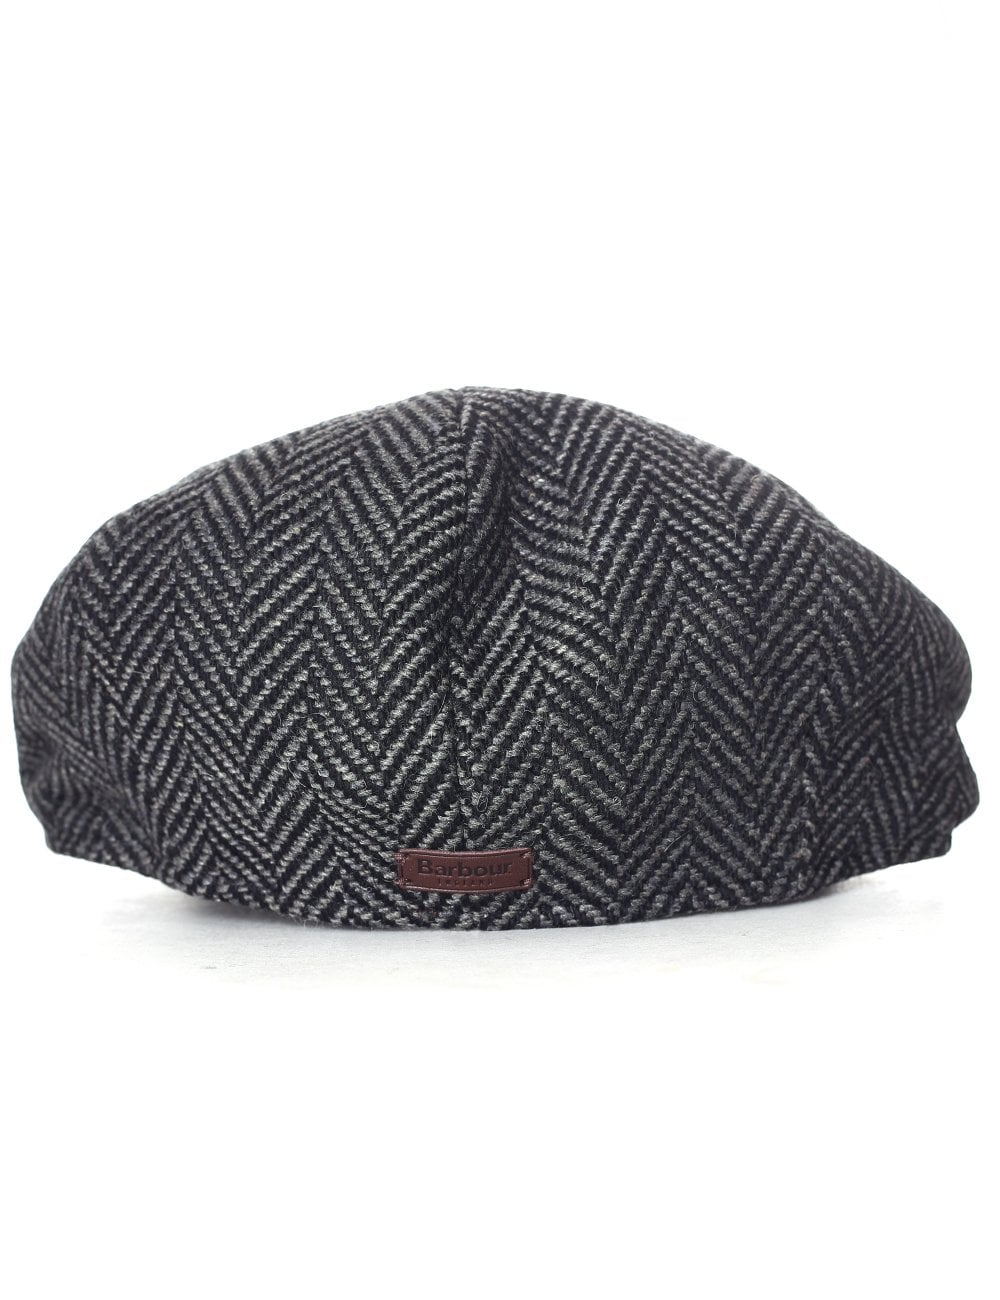 Barbour Men s Herringbone Bakerboy Hat ca3277a50ab